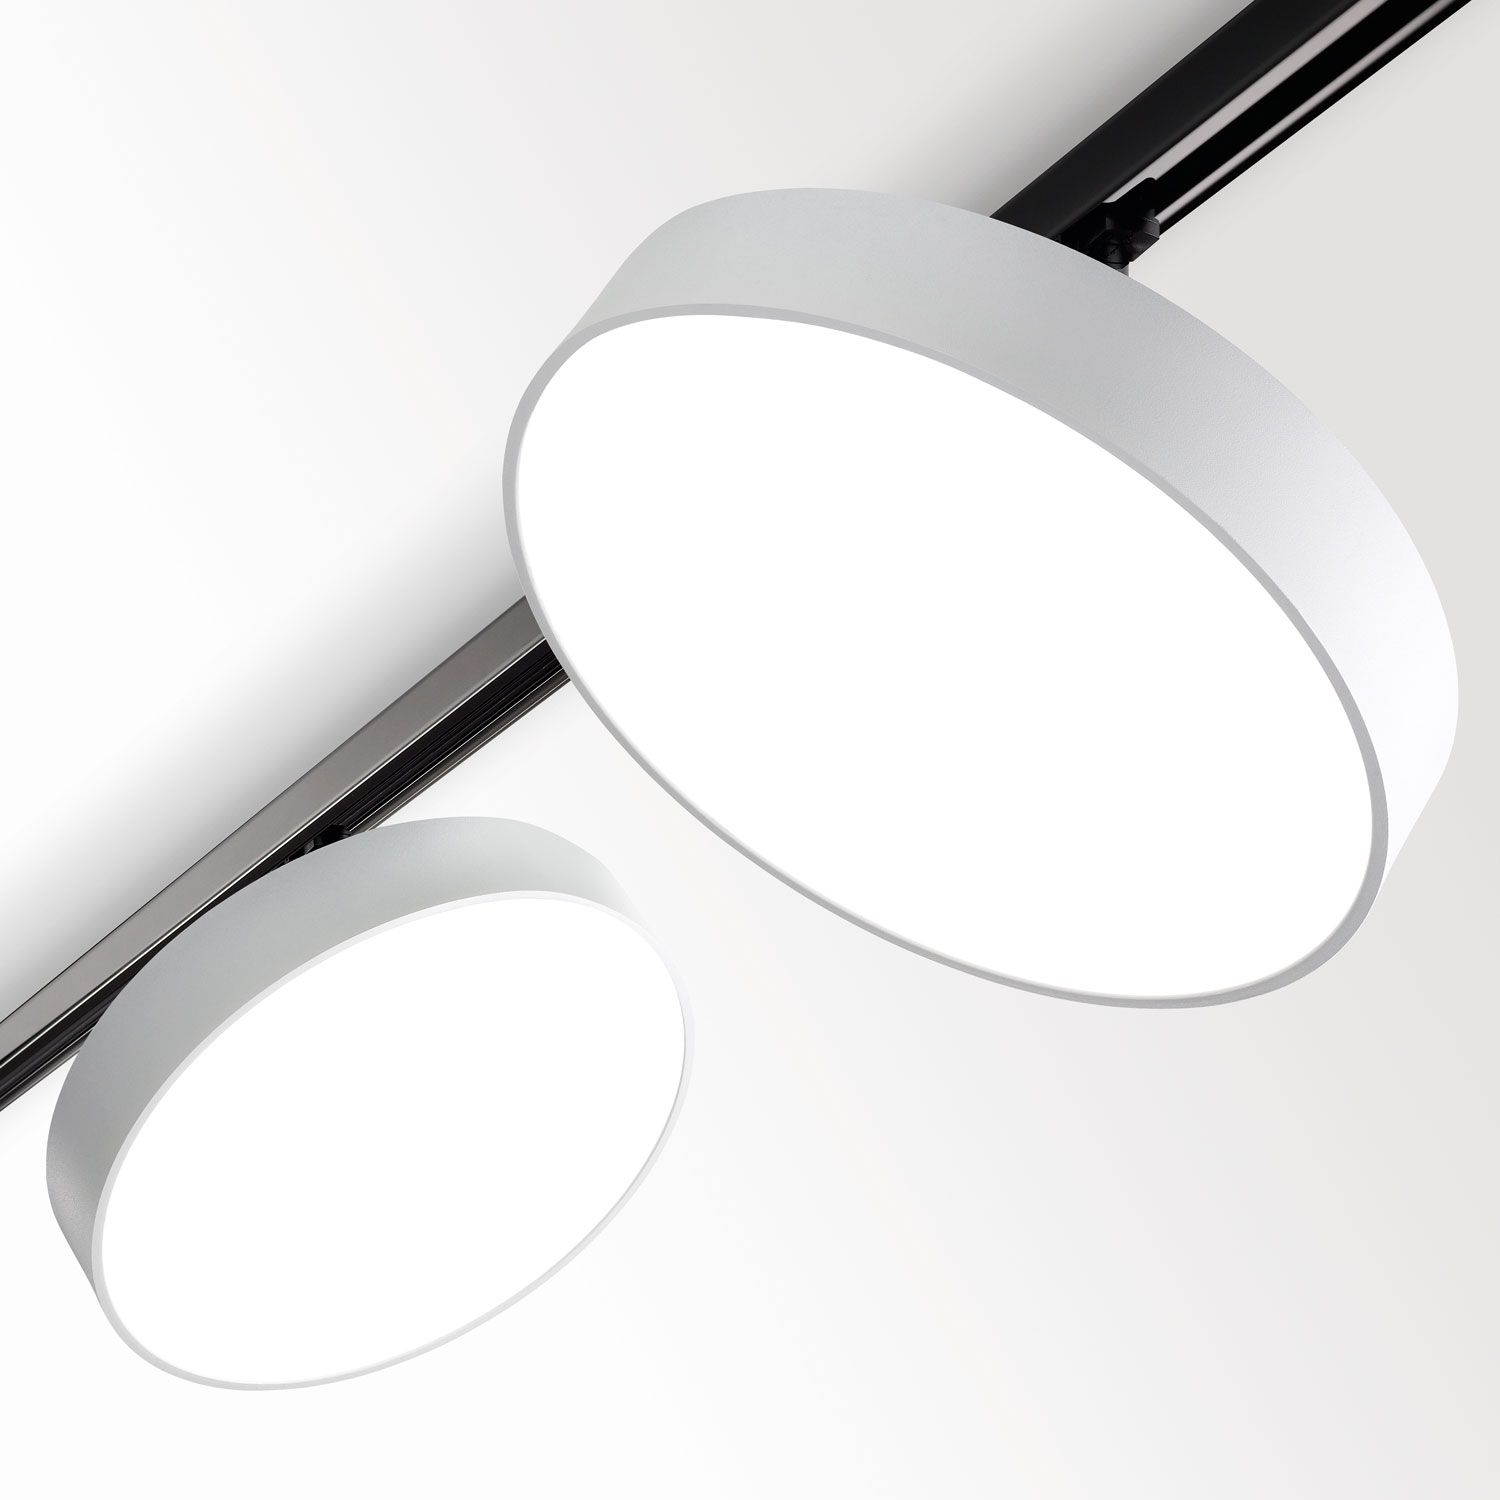 Supernova XS Pivot 260 AD by Delta Light   Ceilings and Light ...